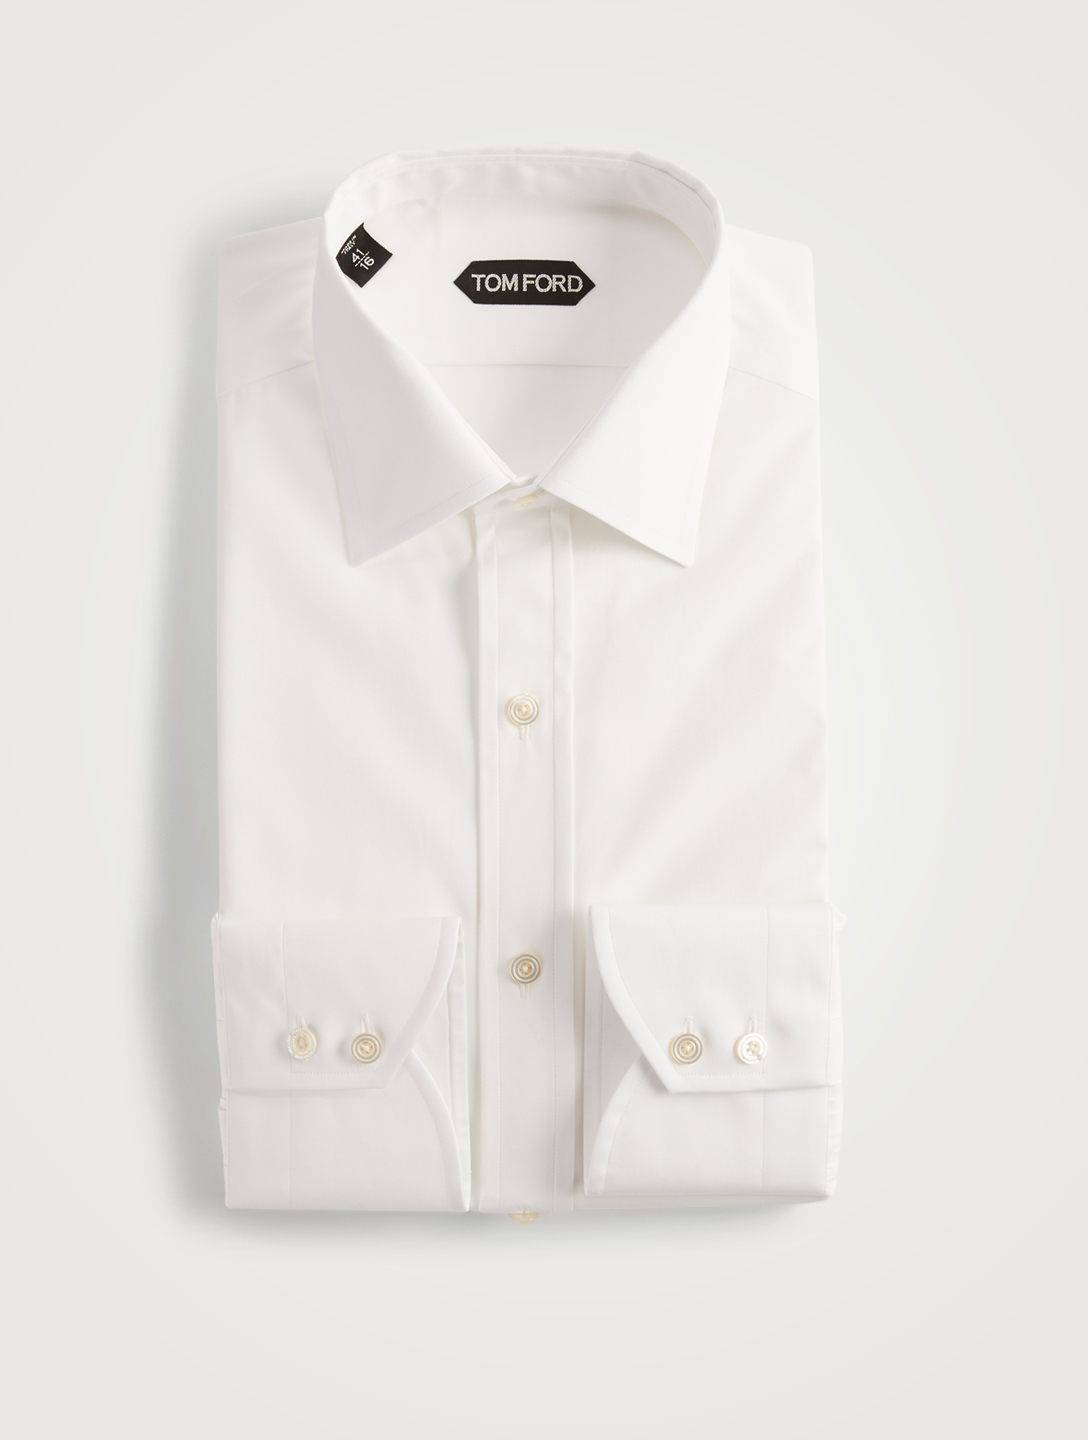 TOM FORD Dress Shirt Men's White